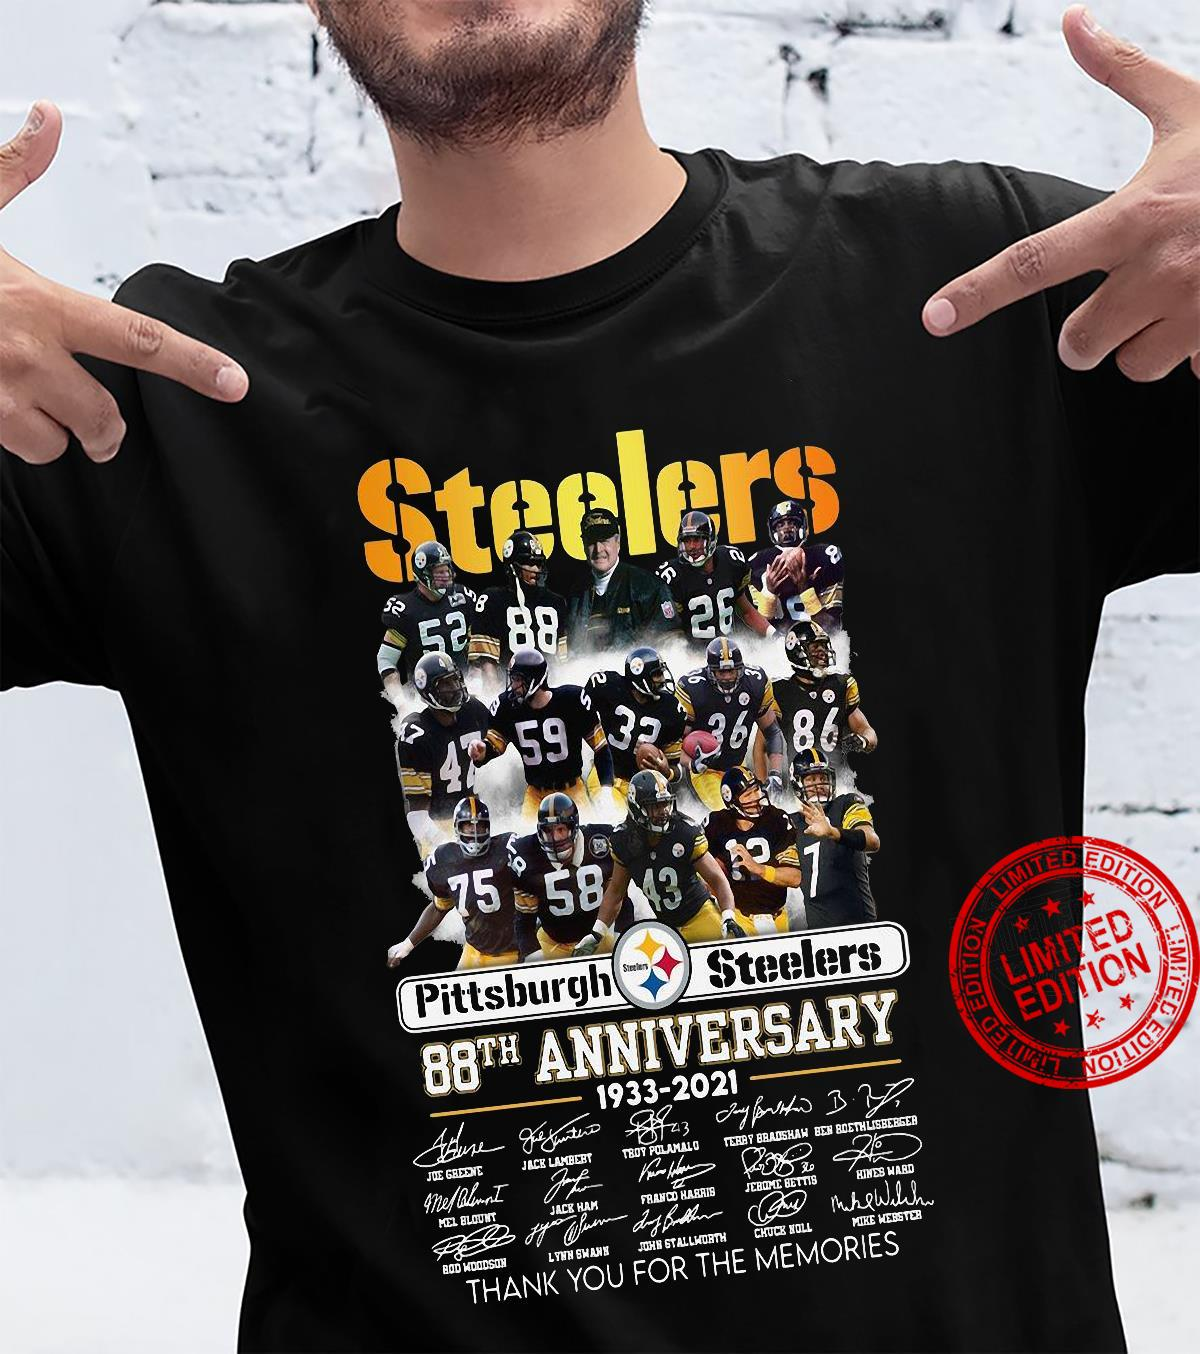 Steelers pittsburgh steelers 88th anniversary 1933 2021 thank you for the memories shirt